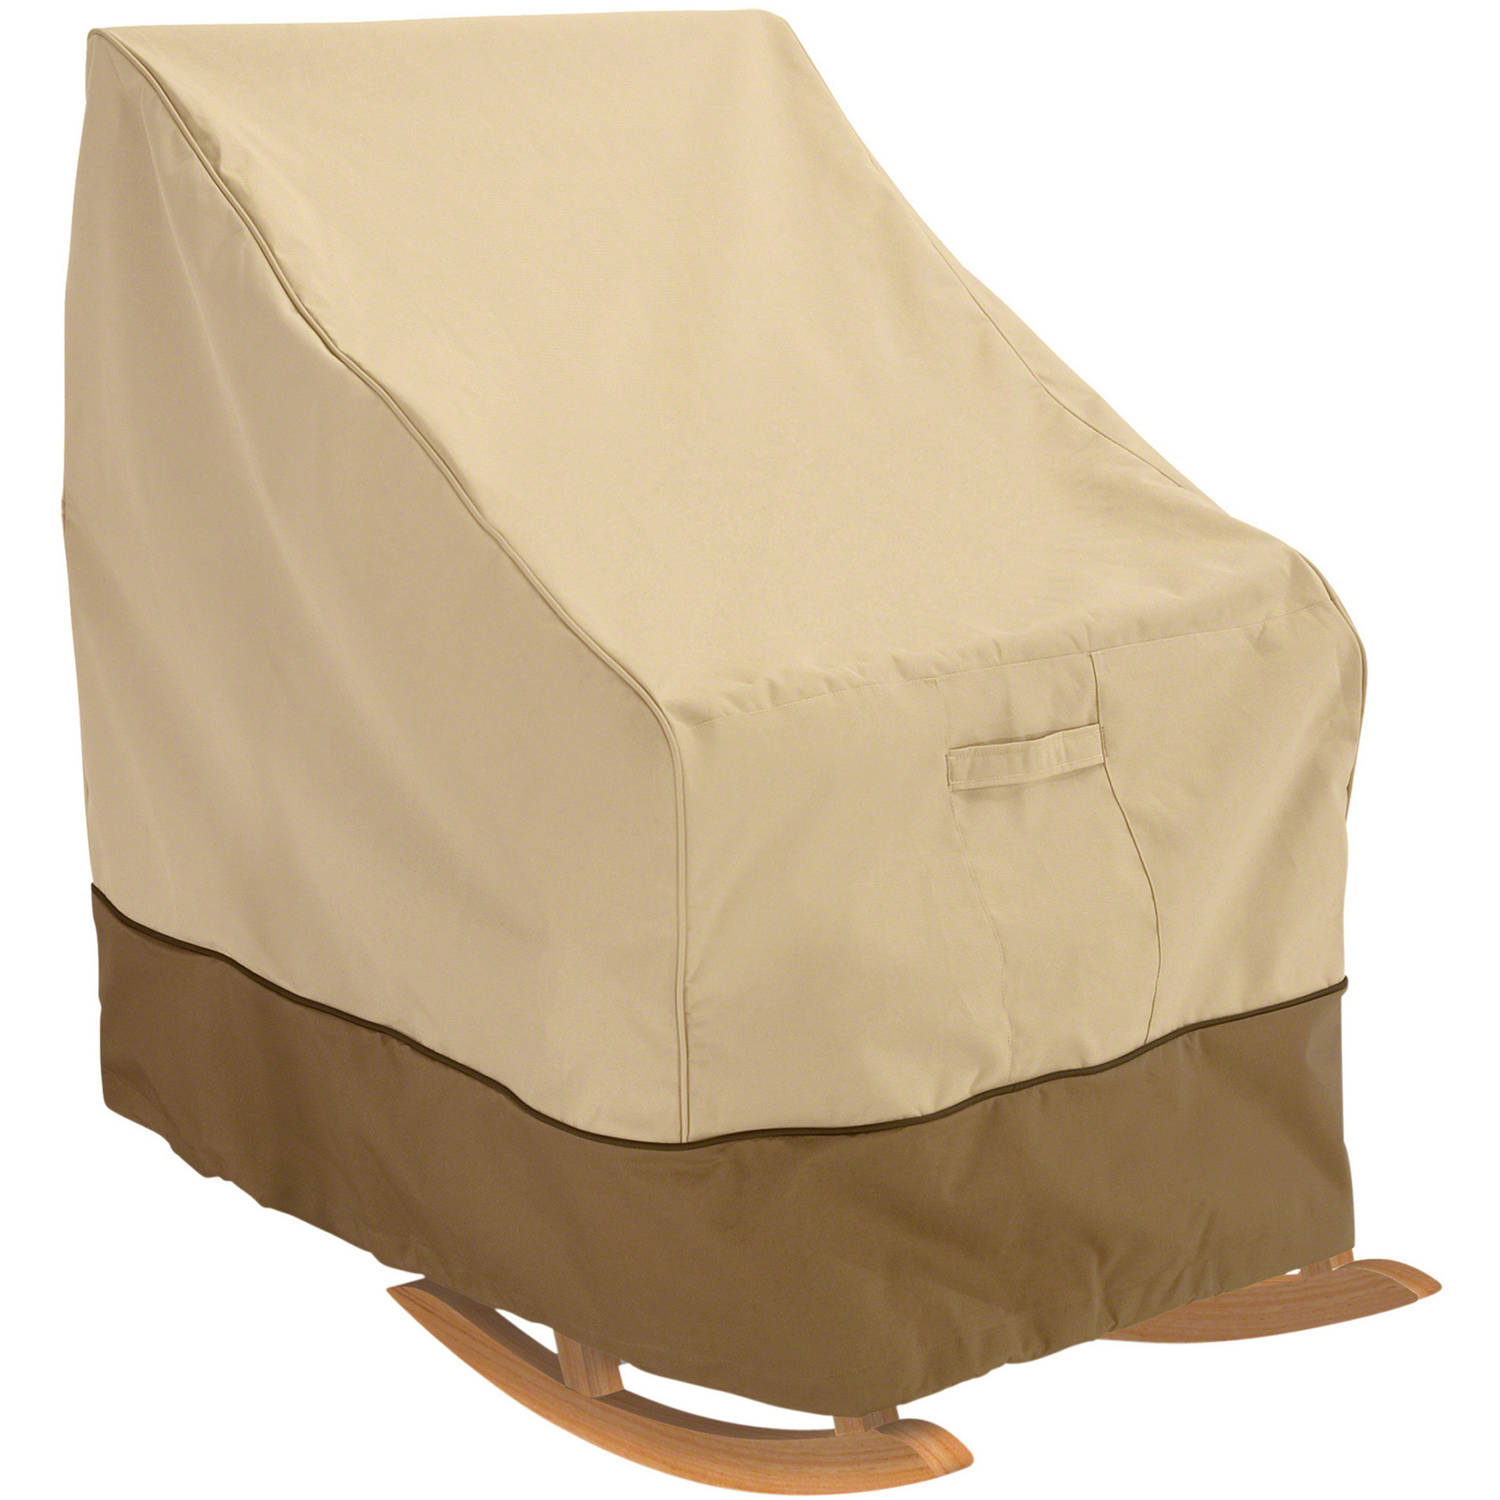 Classic Accessories Veranda Patio Rocking Chair Cover   Durable And Water  Resistant Outdoor Furniture Cover, Medium (70952)   Walmart.com